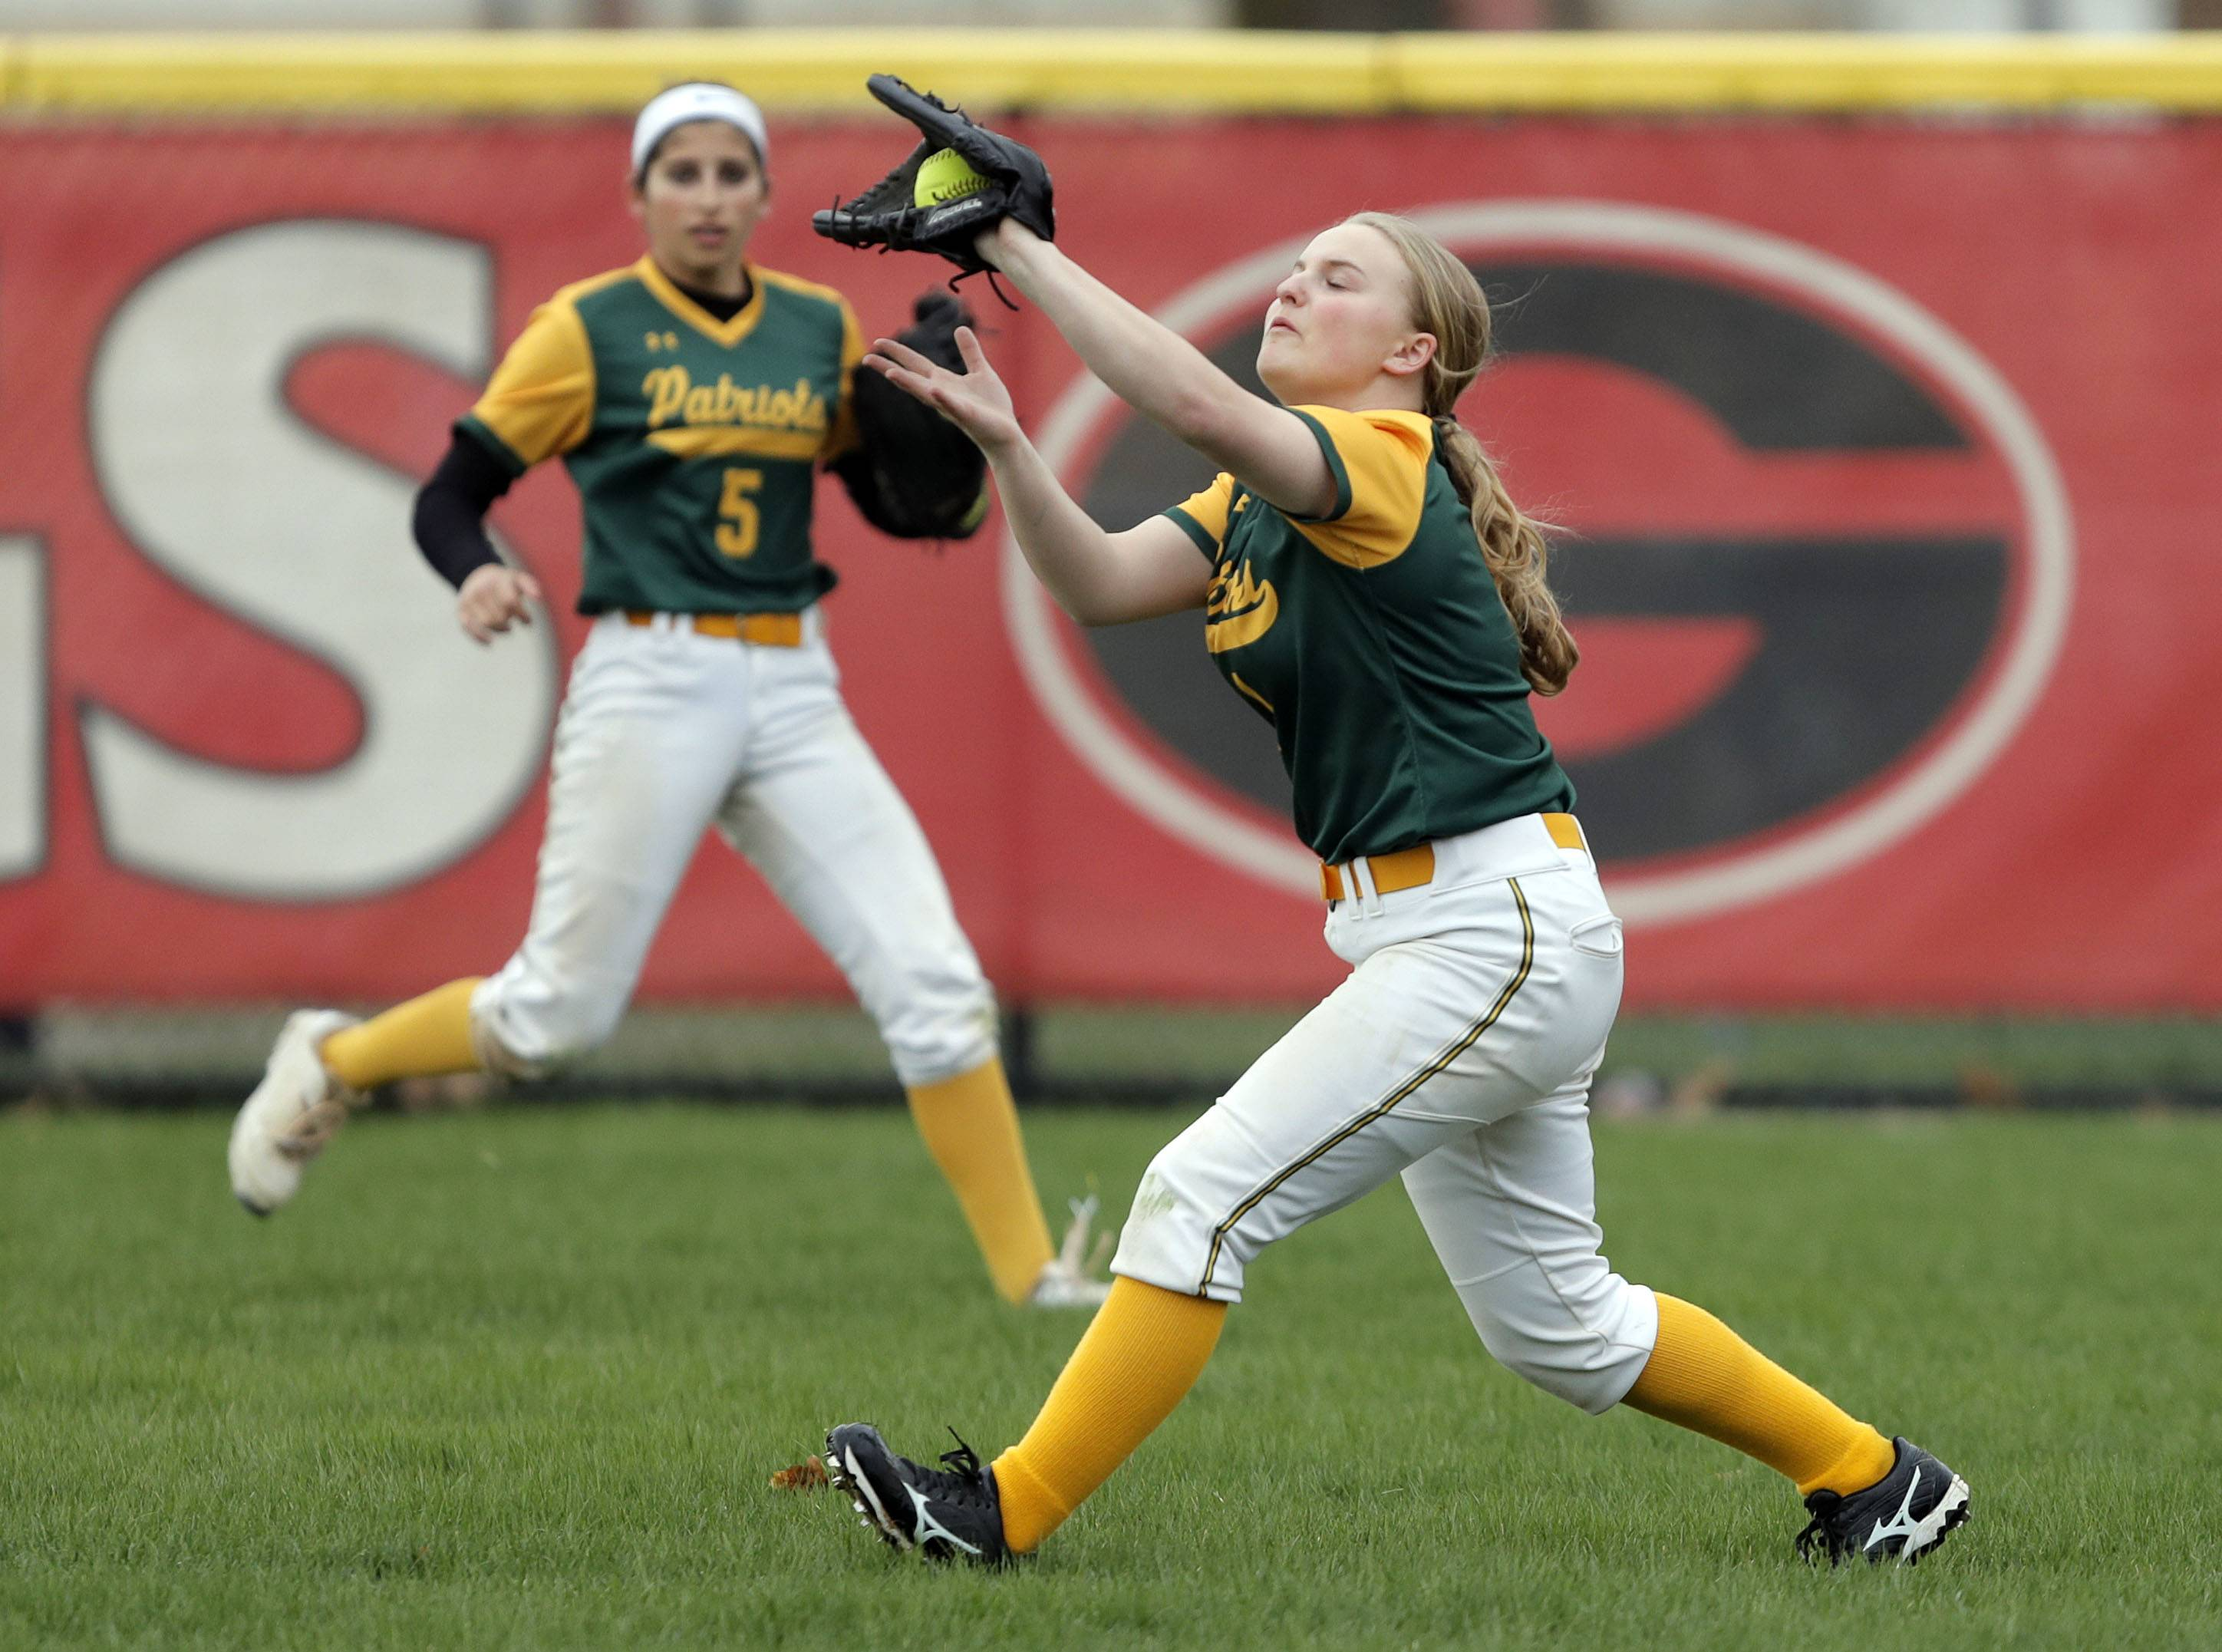 Stevenson's Lexi Gitler catches a fly ball during their game Wednesday at Grant High School in Fox Lake.